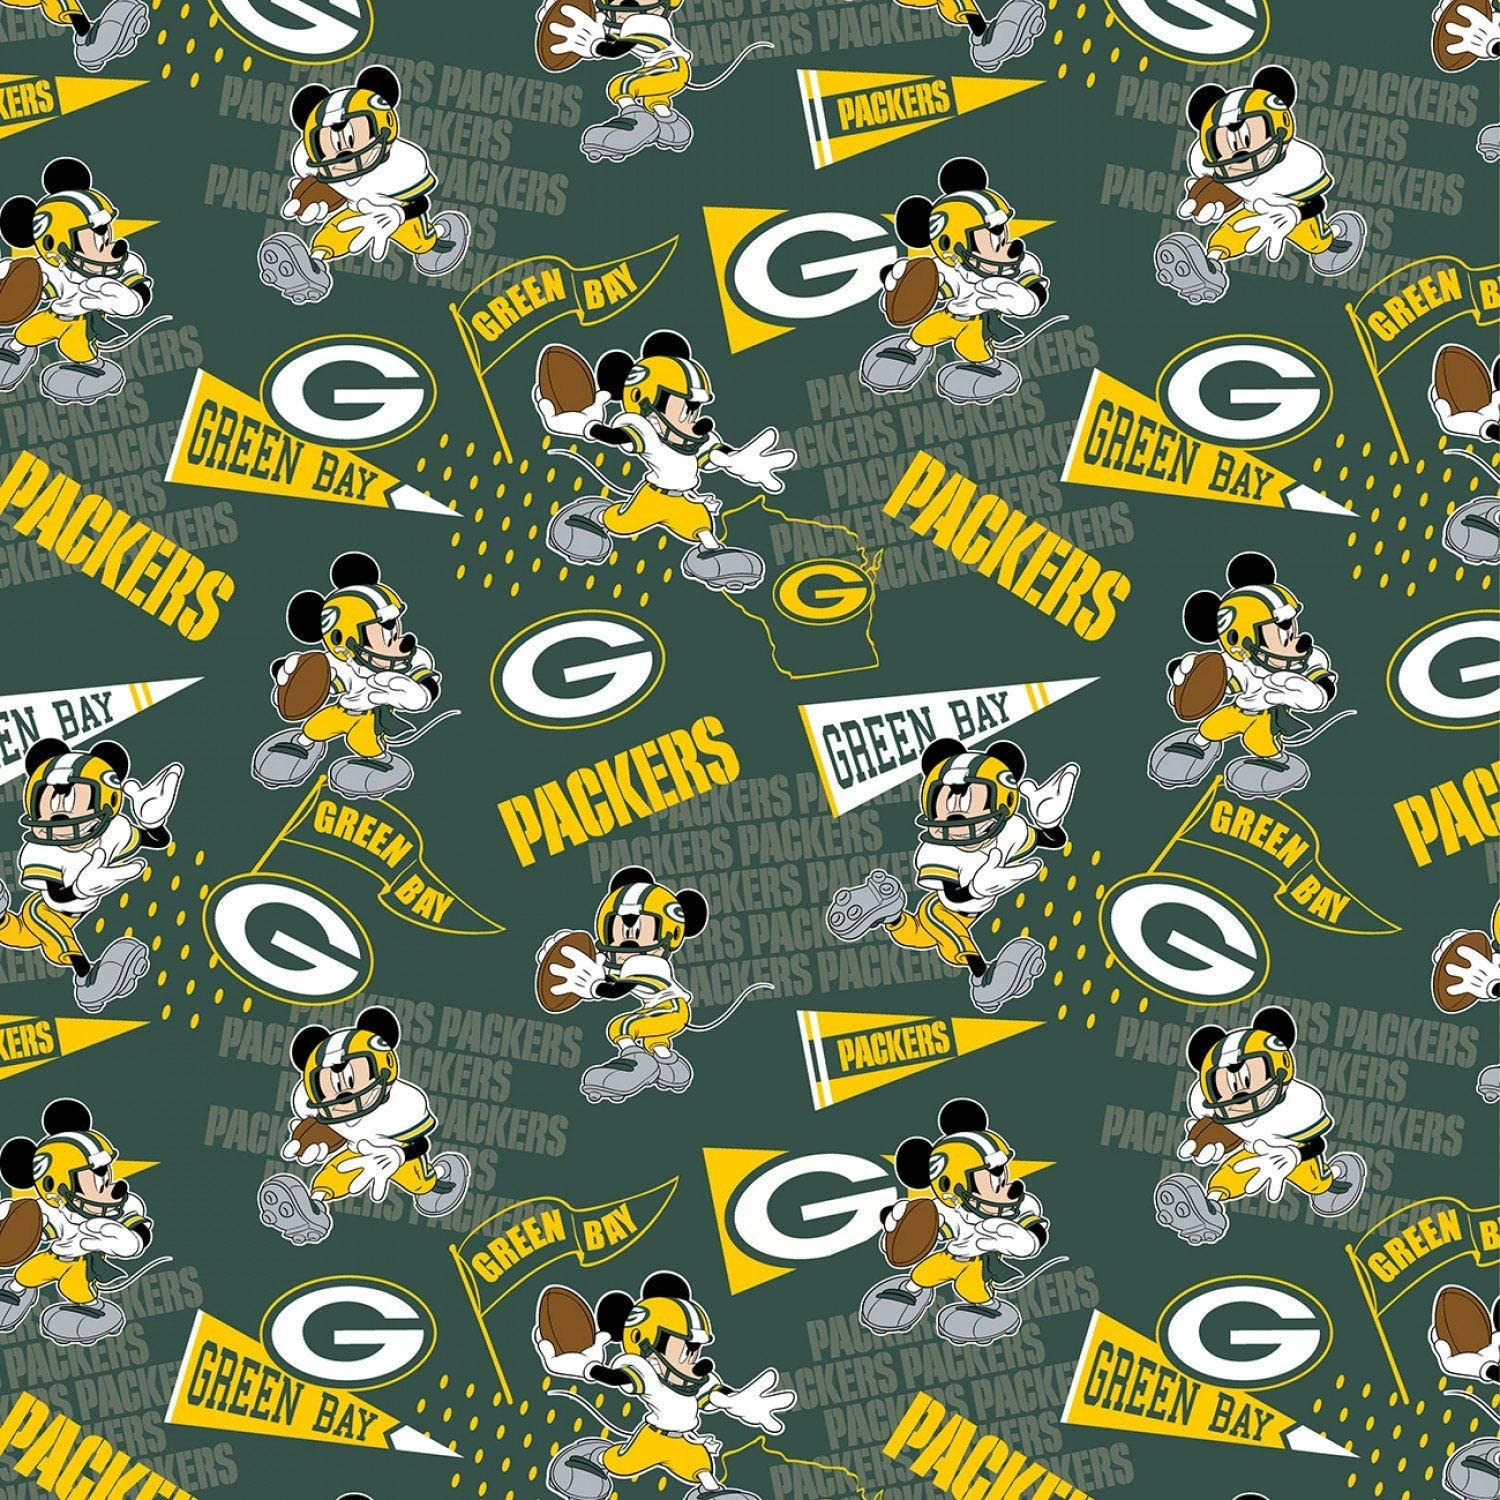 Amazon Com Nfl Mickey Disney Mash Up Fabric Green Bay Packers Fabric Nfl Football In Green 44 Wide 100 Cotton Fabric By The Yard